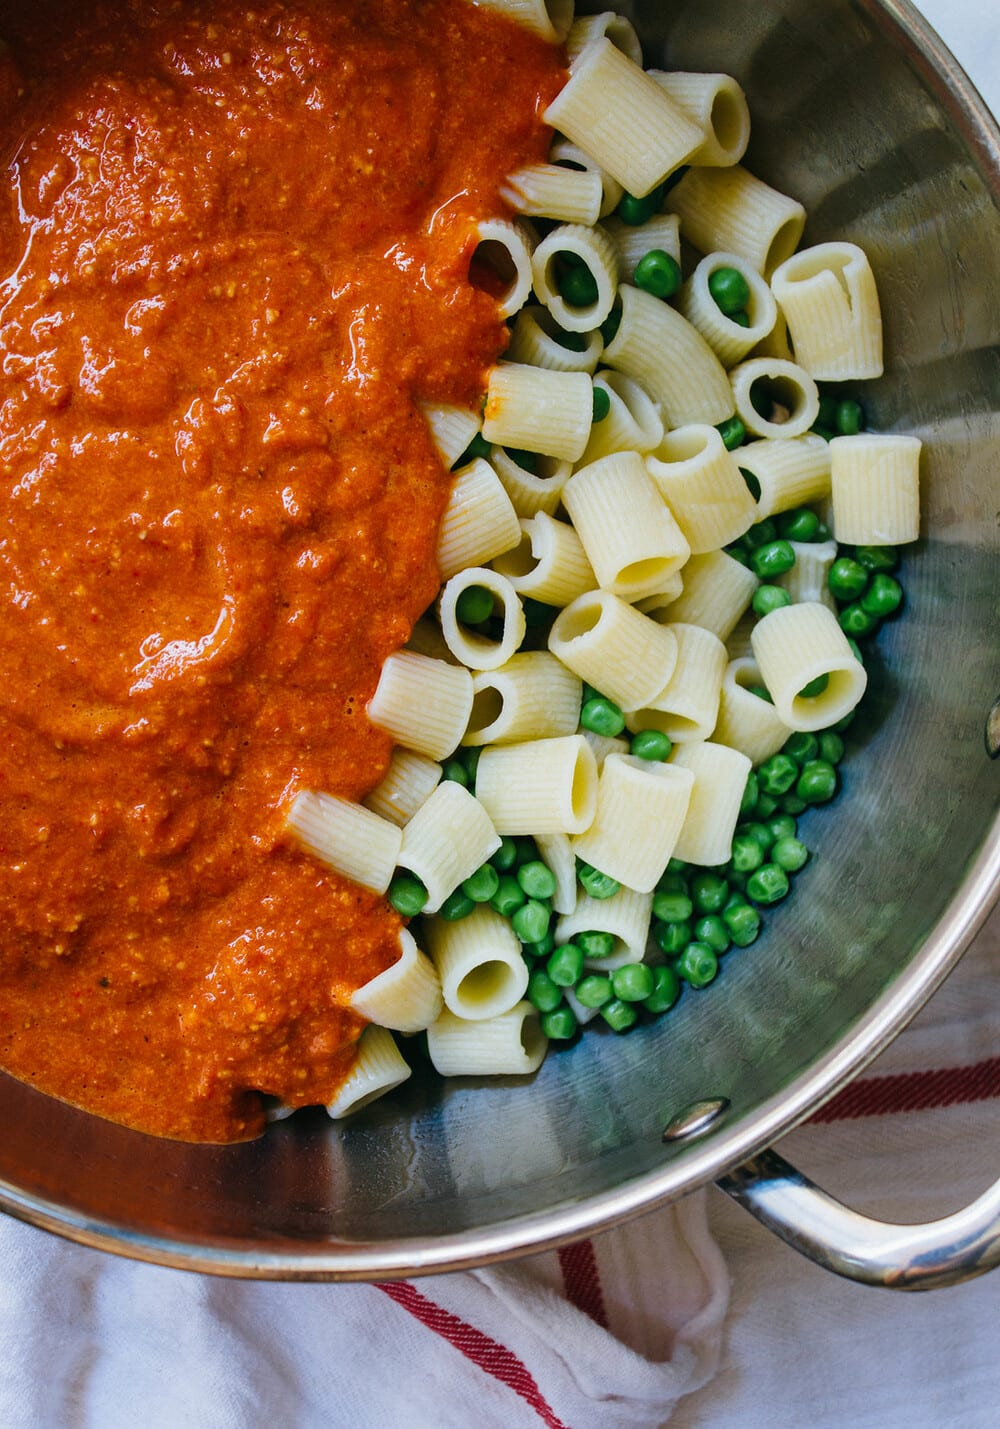 top down view of a pot with cooked pasta and peas, topped with romesco sauce before combining.